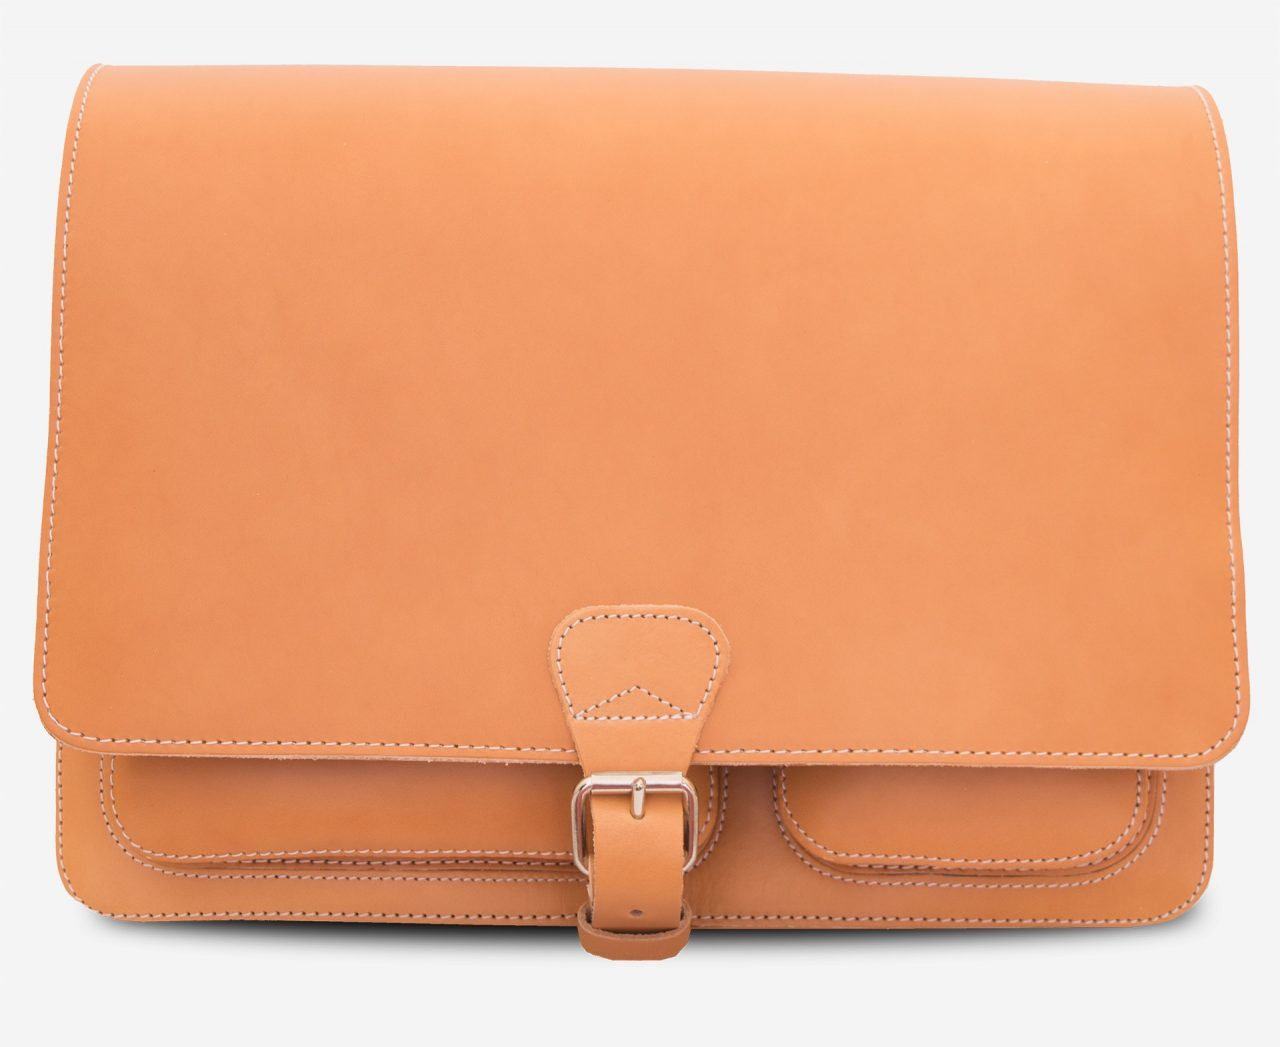 Front view of the tan leather messenger shoulder bag.